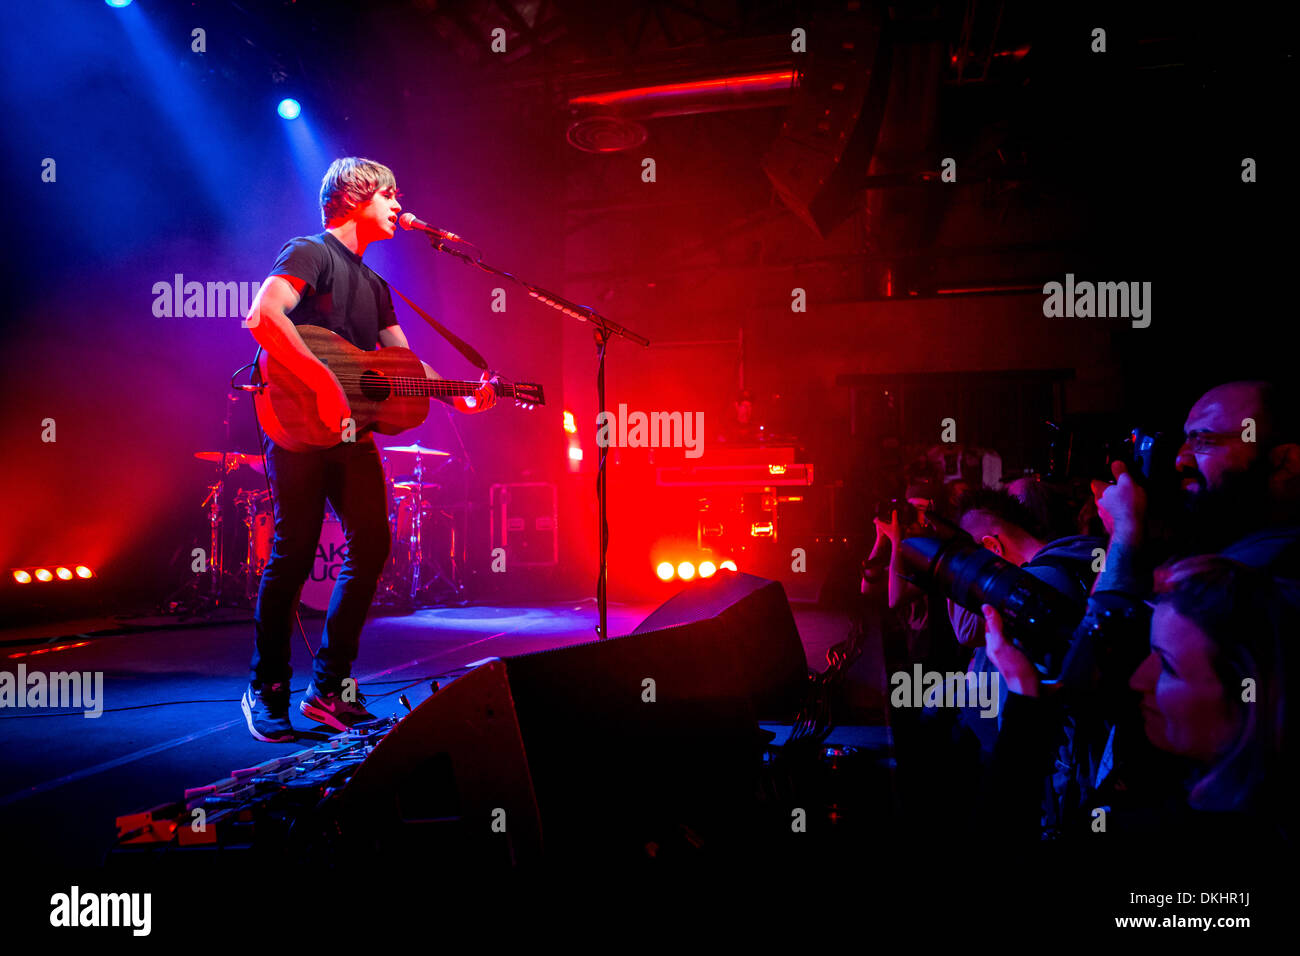 Milan Italy. 04th December 2013. The English indie-rock songwriter JAKE BUGG performs live at the music club Alcatraz Stock Photo